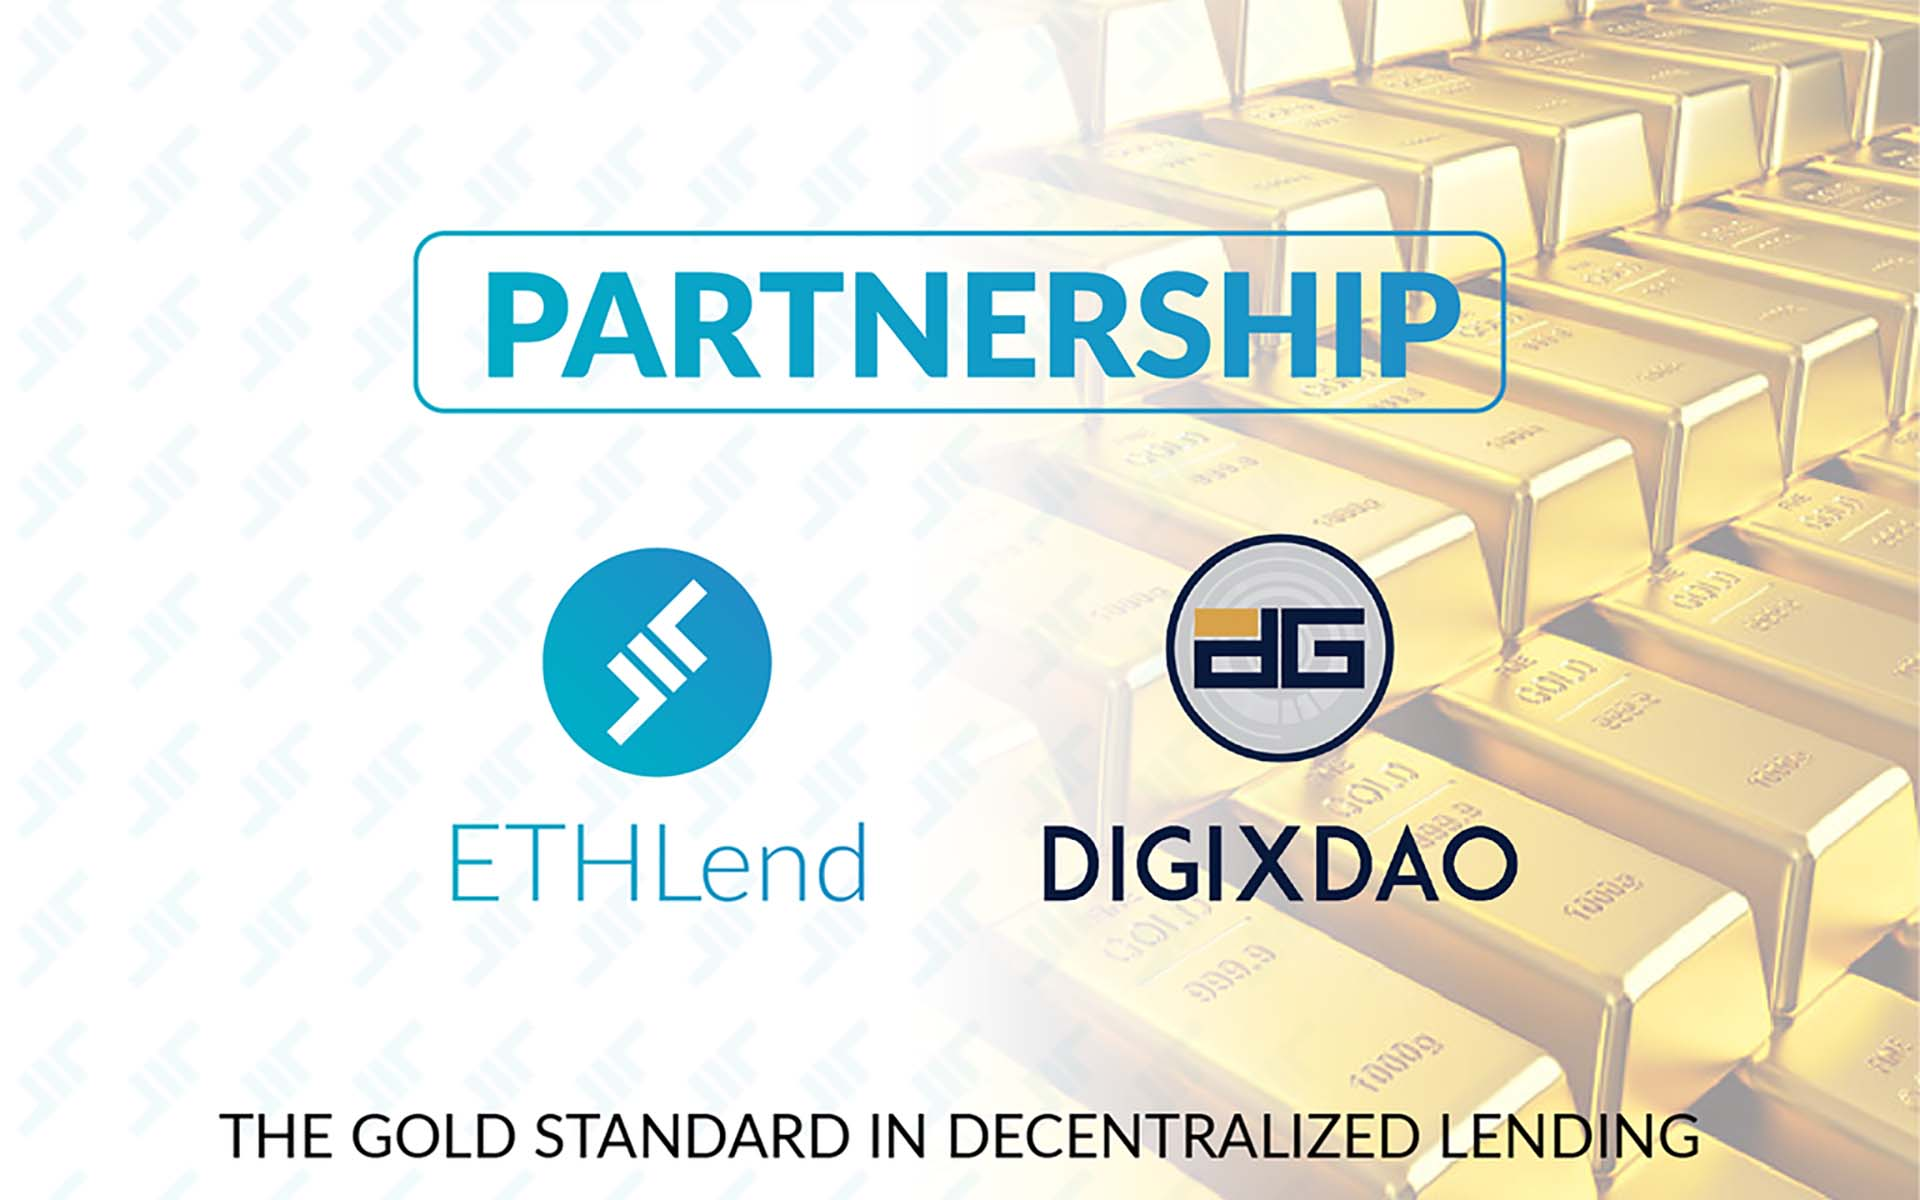 Digix & ETHLend Announce Partnership